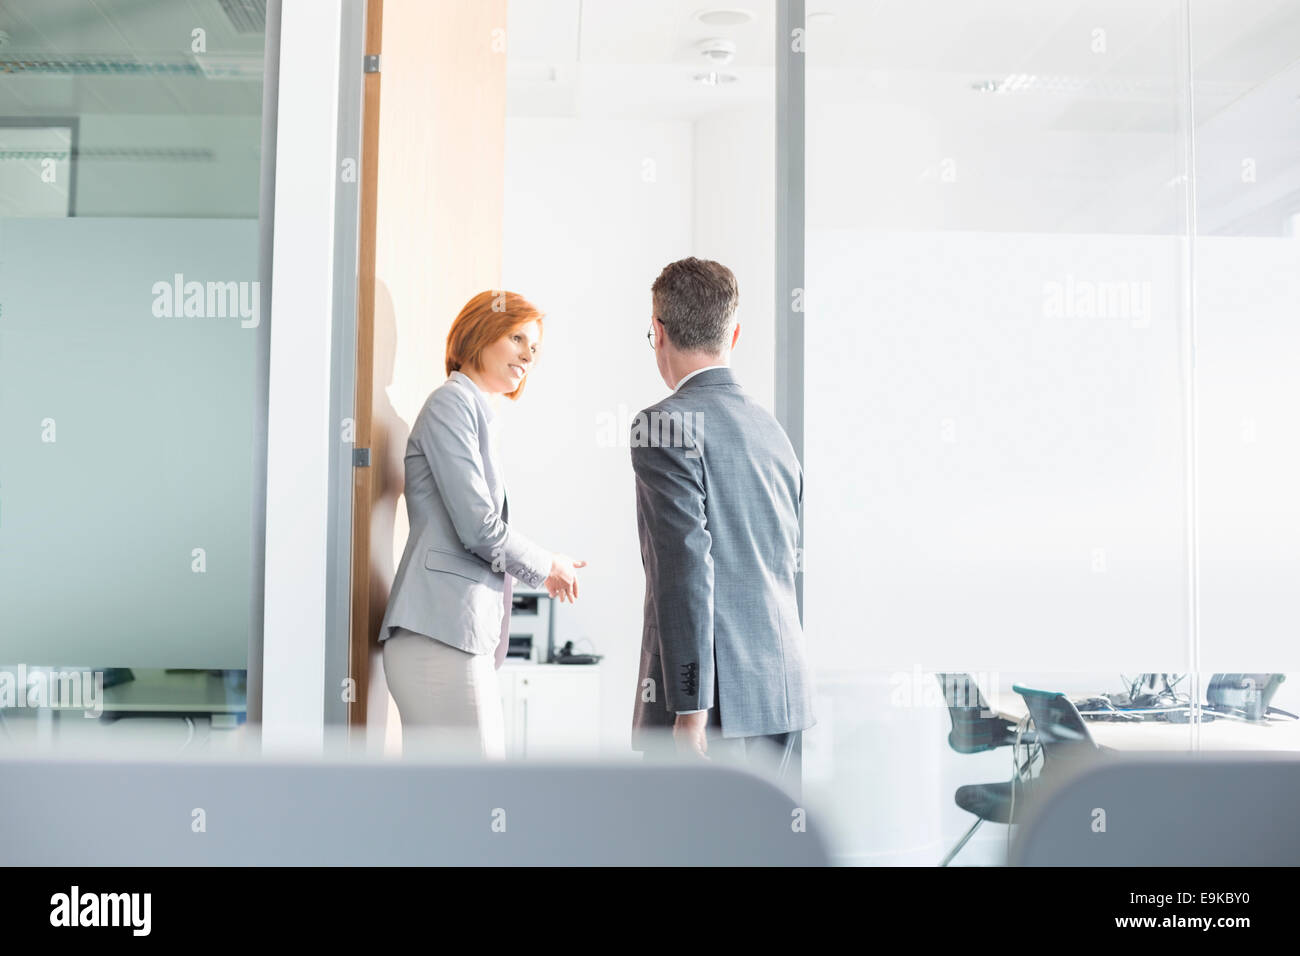 Business people entering into conference room - Stock Image